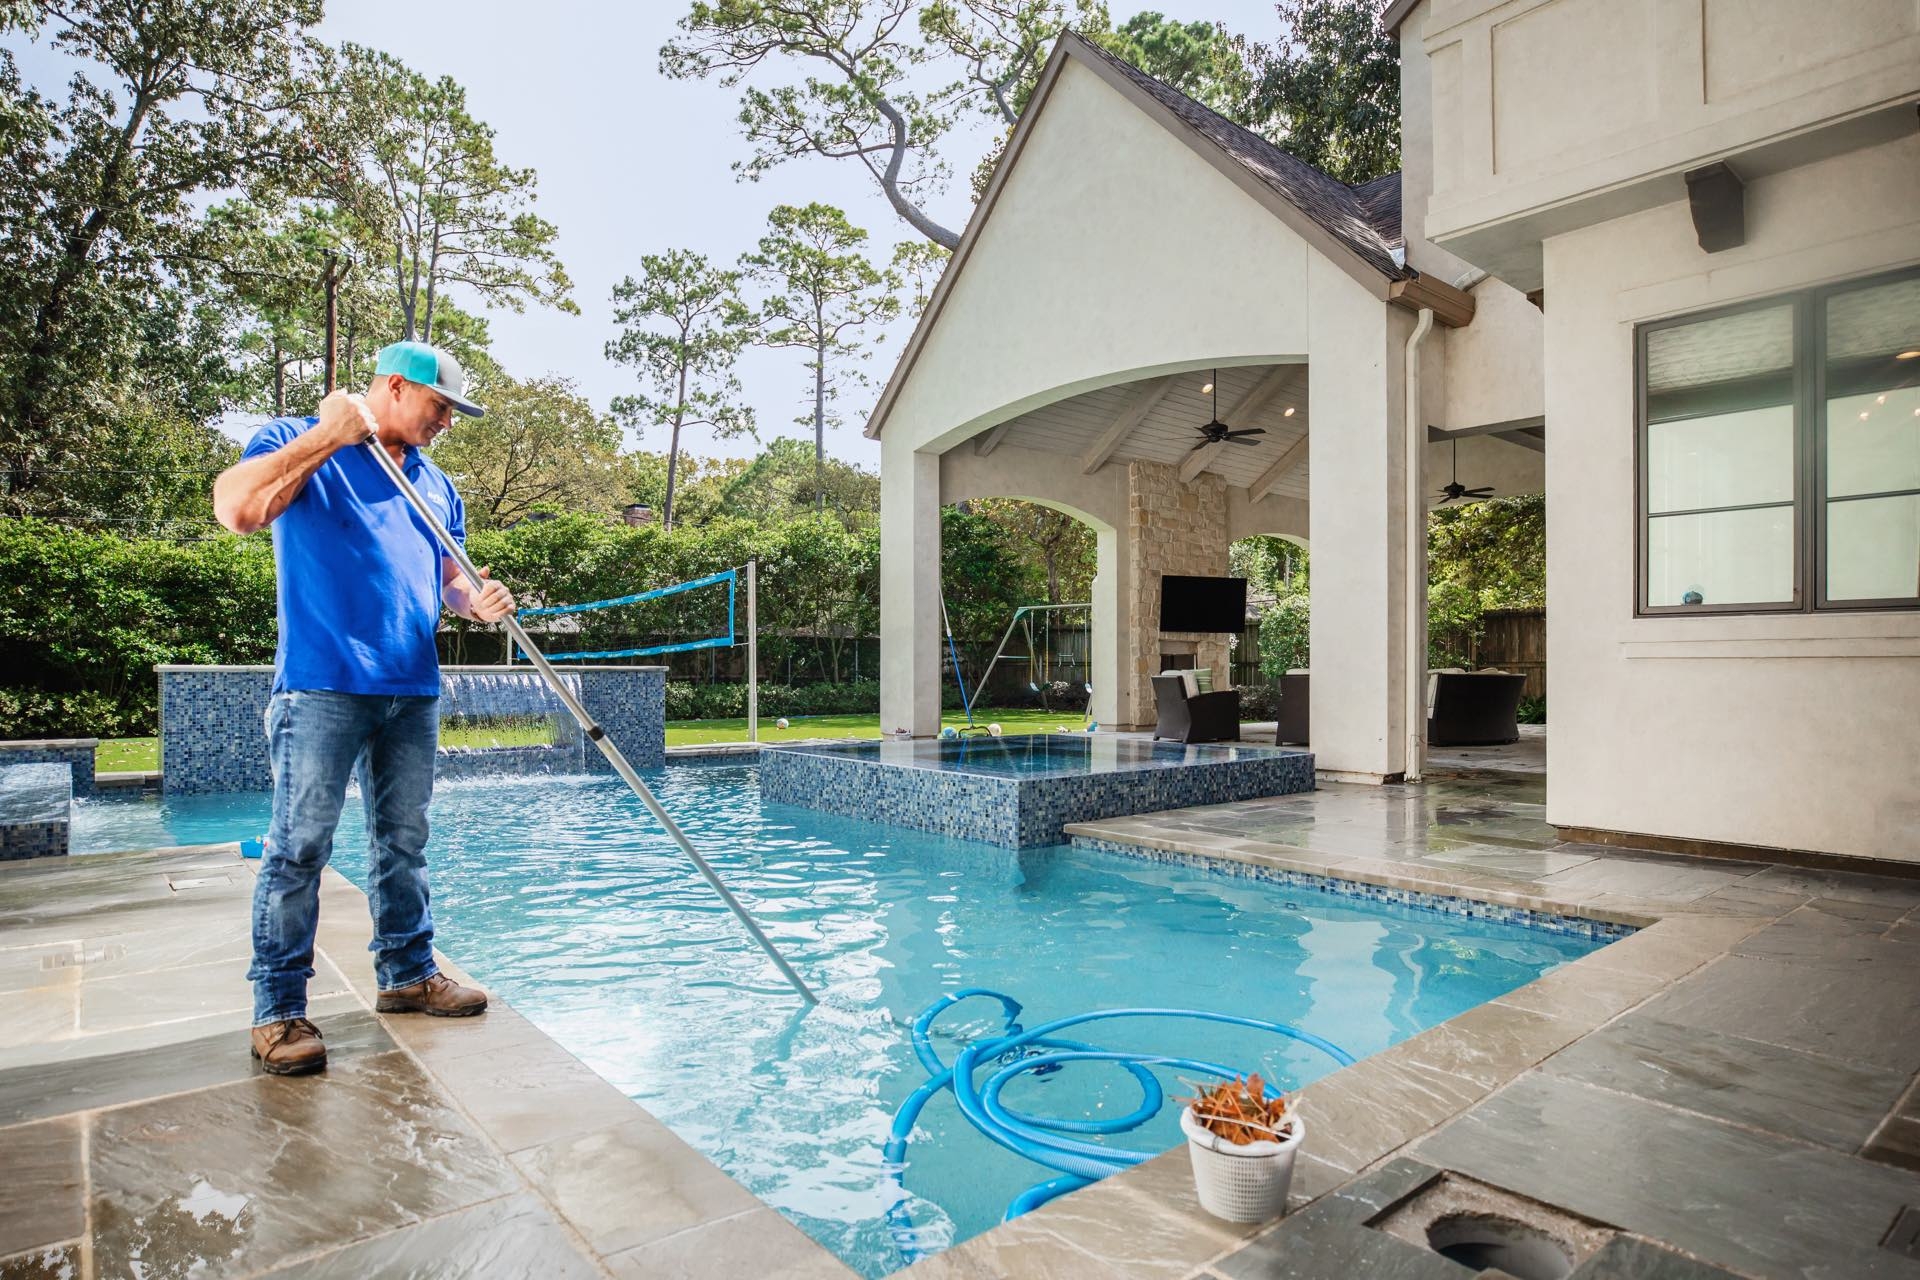 Maintenance worker cleans leaves from Avea pool.